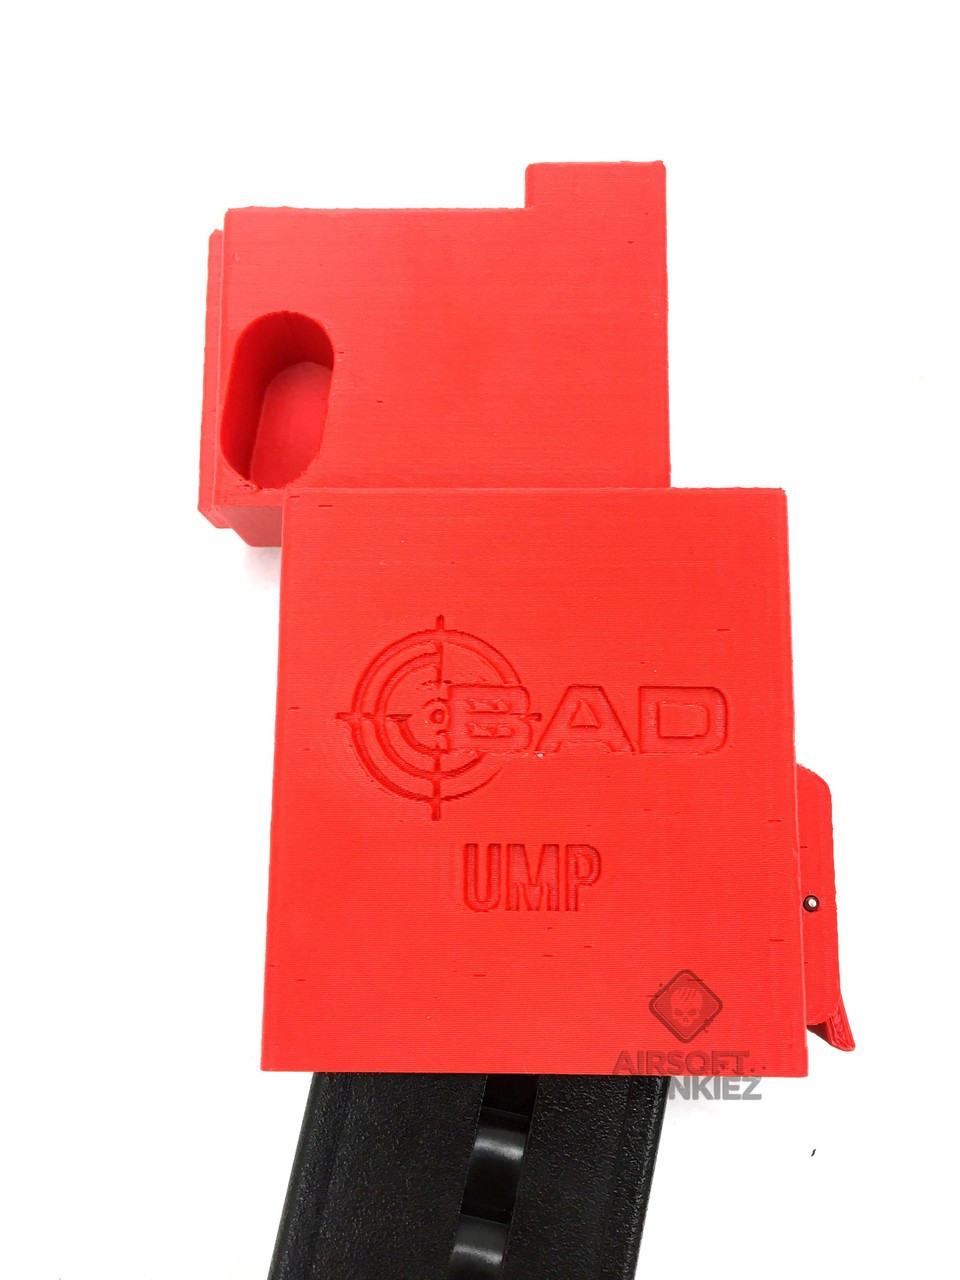 Bingo Airsoft Designs - Odin Innovations M12 Speed Loader Adapter for UMP